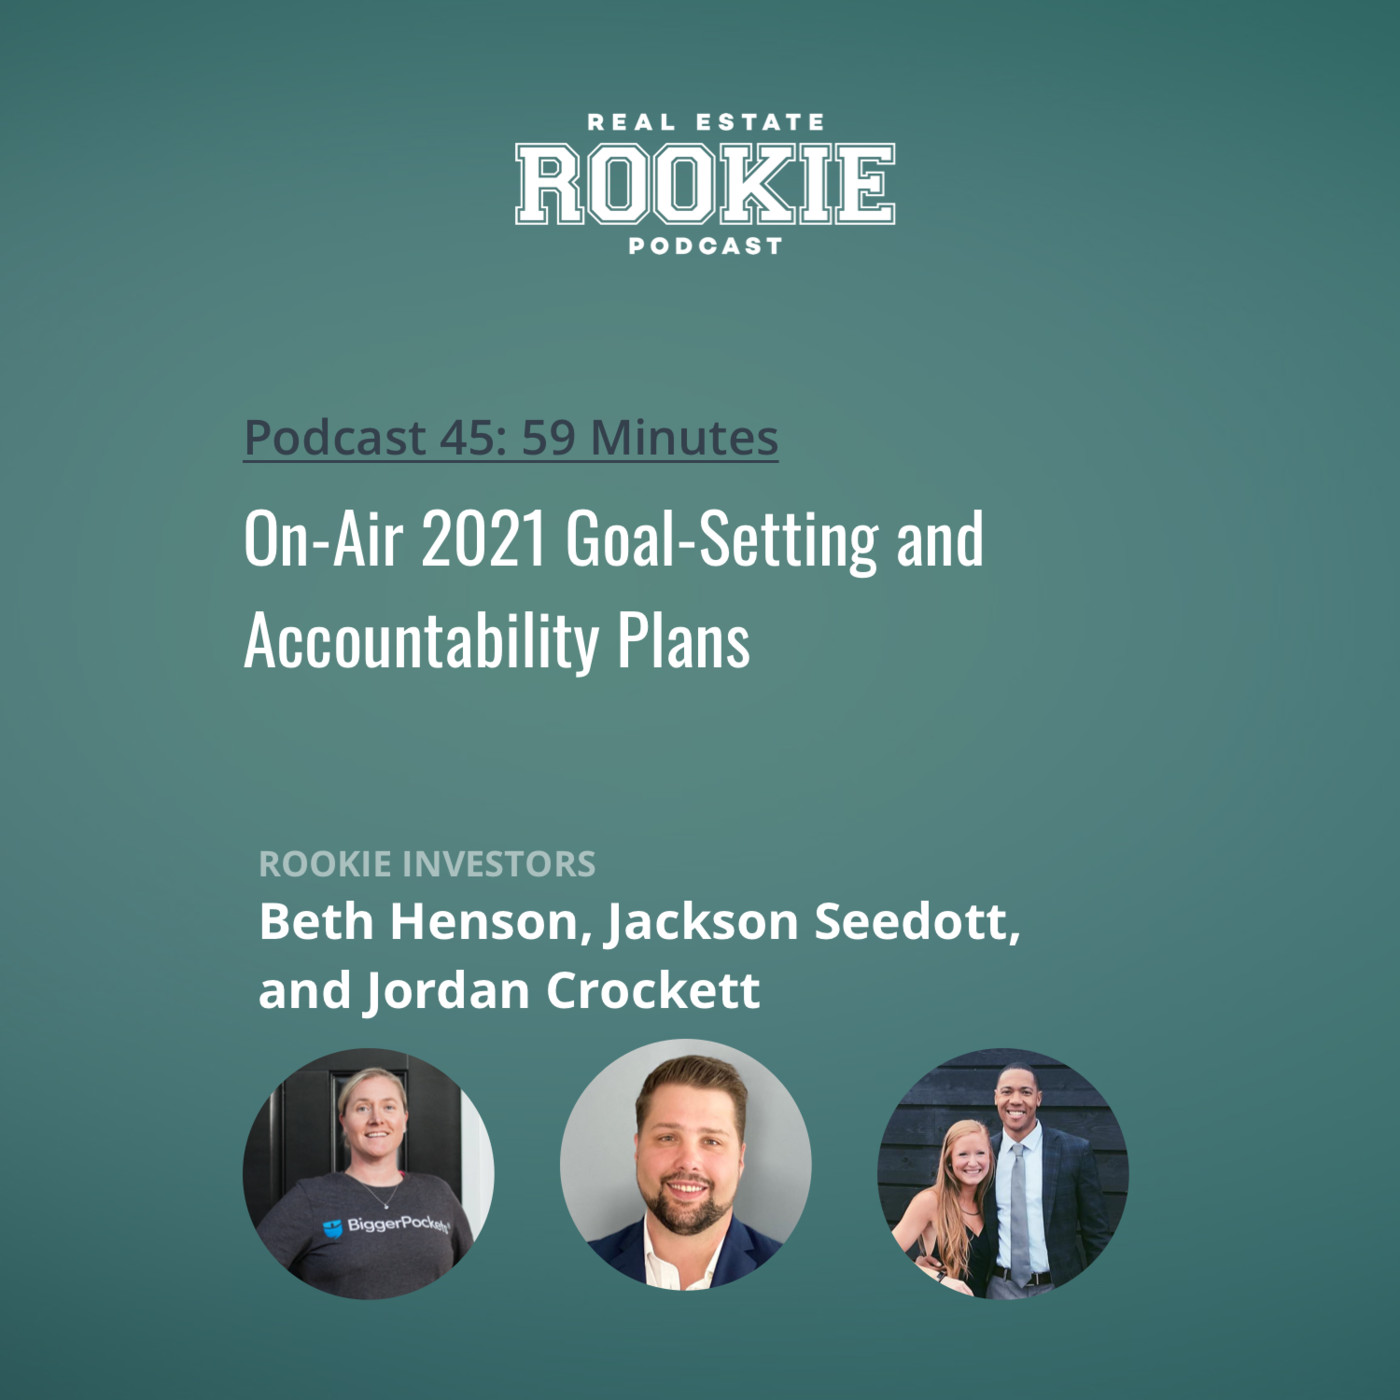 On-Air 2021 Goal-Setting and Accountability Plans with Rookie Investors Beth Henson, Jackson Seedott, and Jordan Crockett